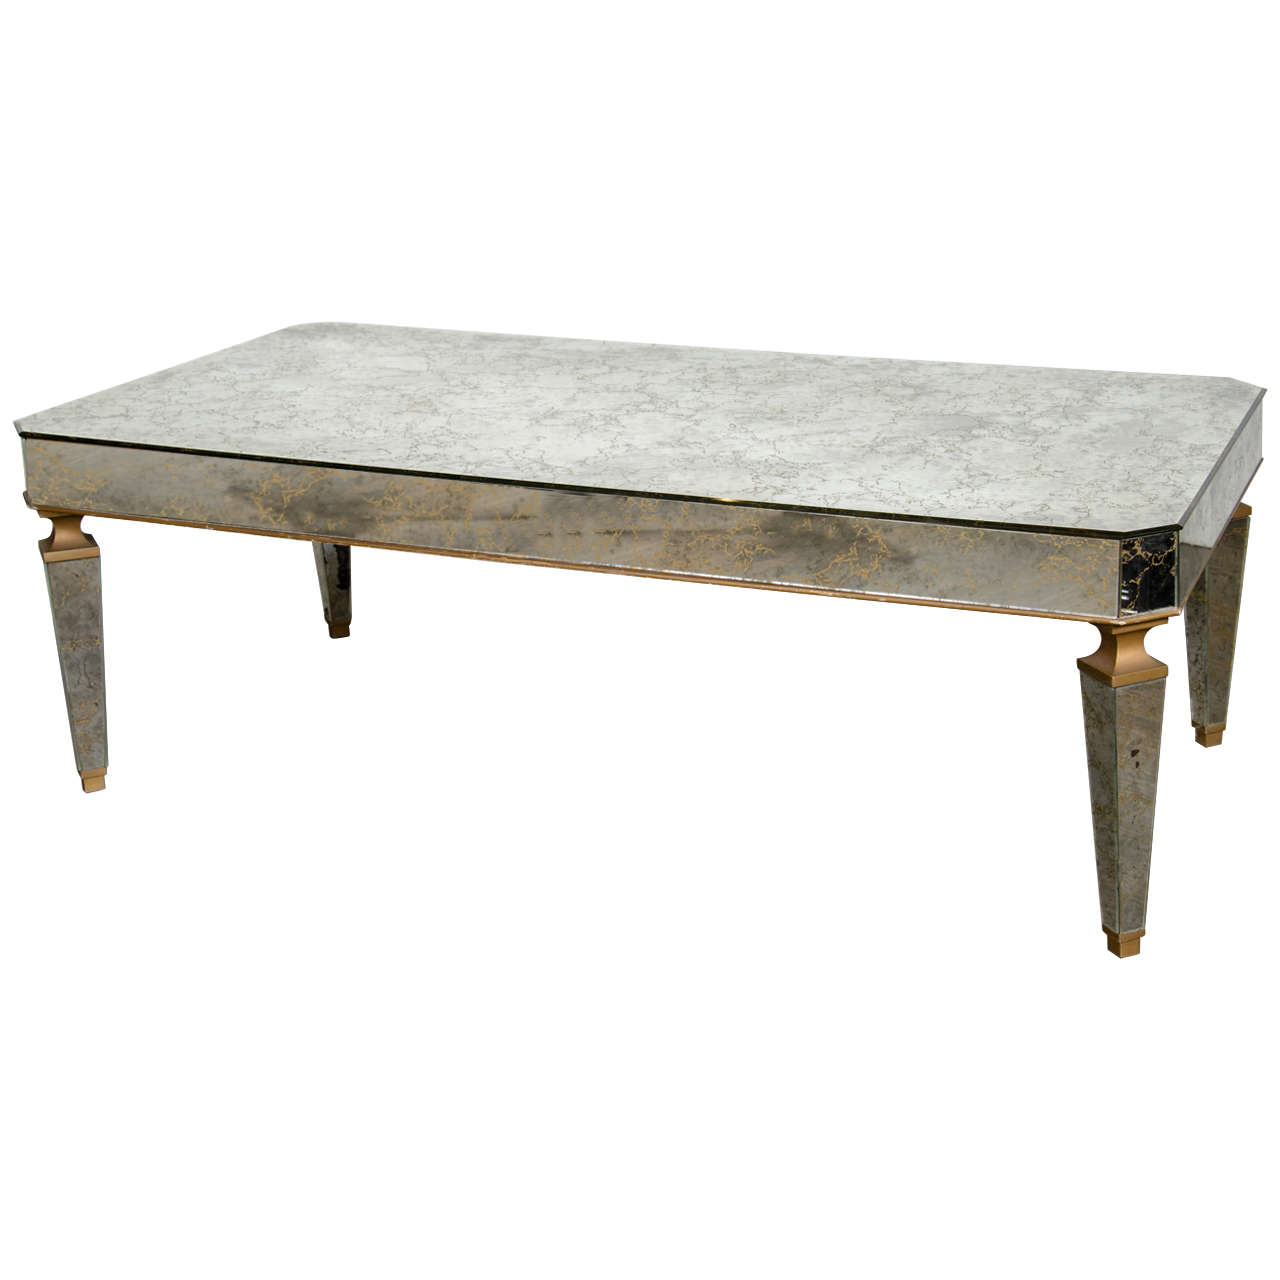 Elegant Mirrored And Gilt Cocktail Table In The Manner Of Jansen For Sale At 1stdibs